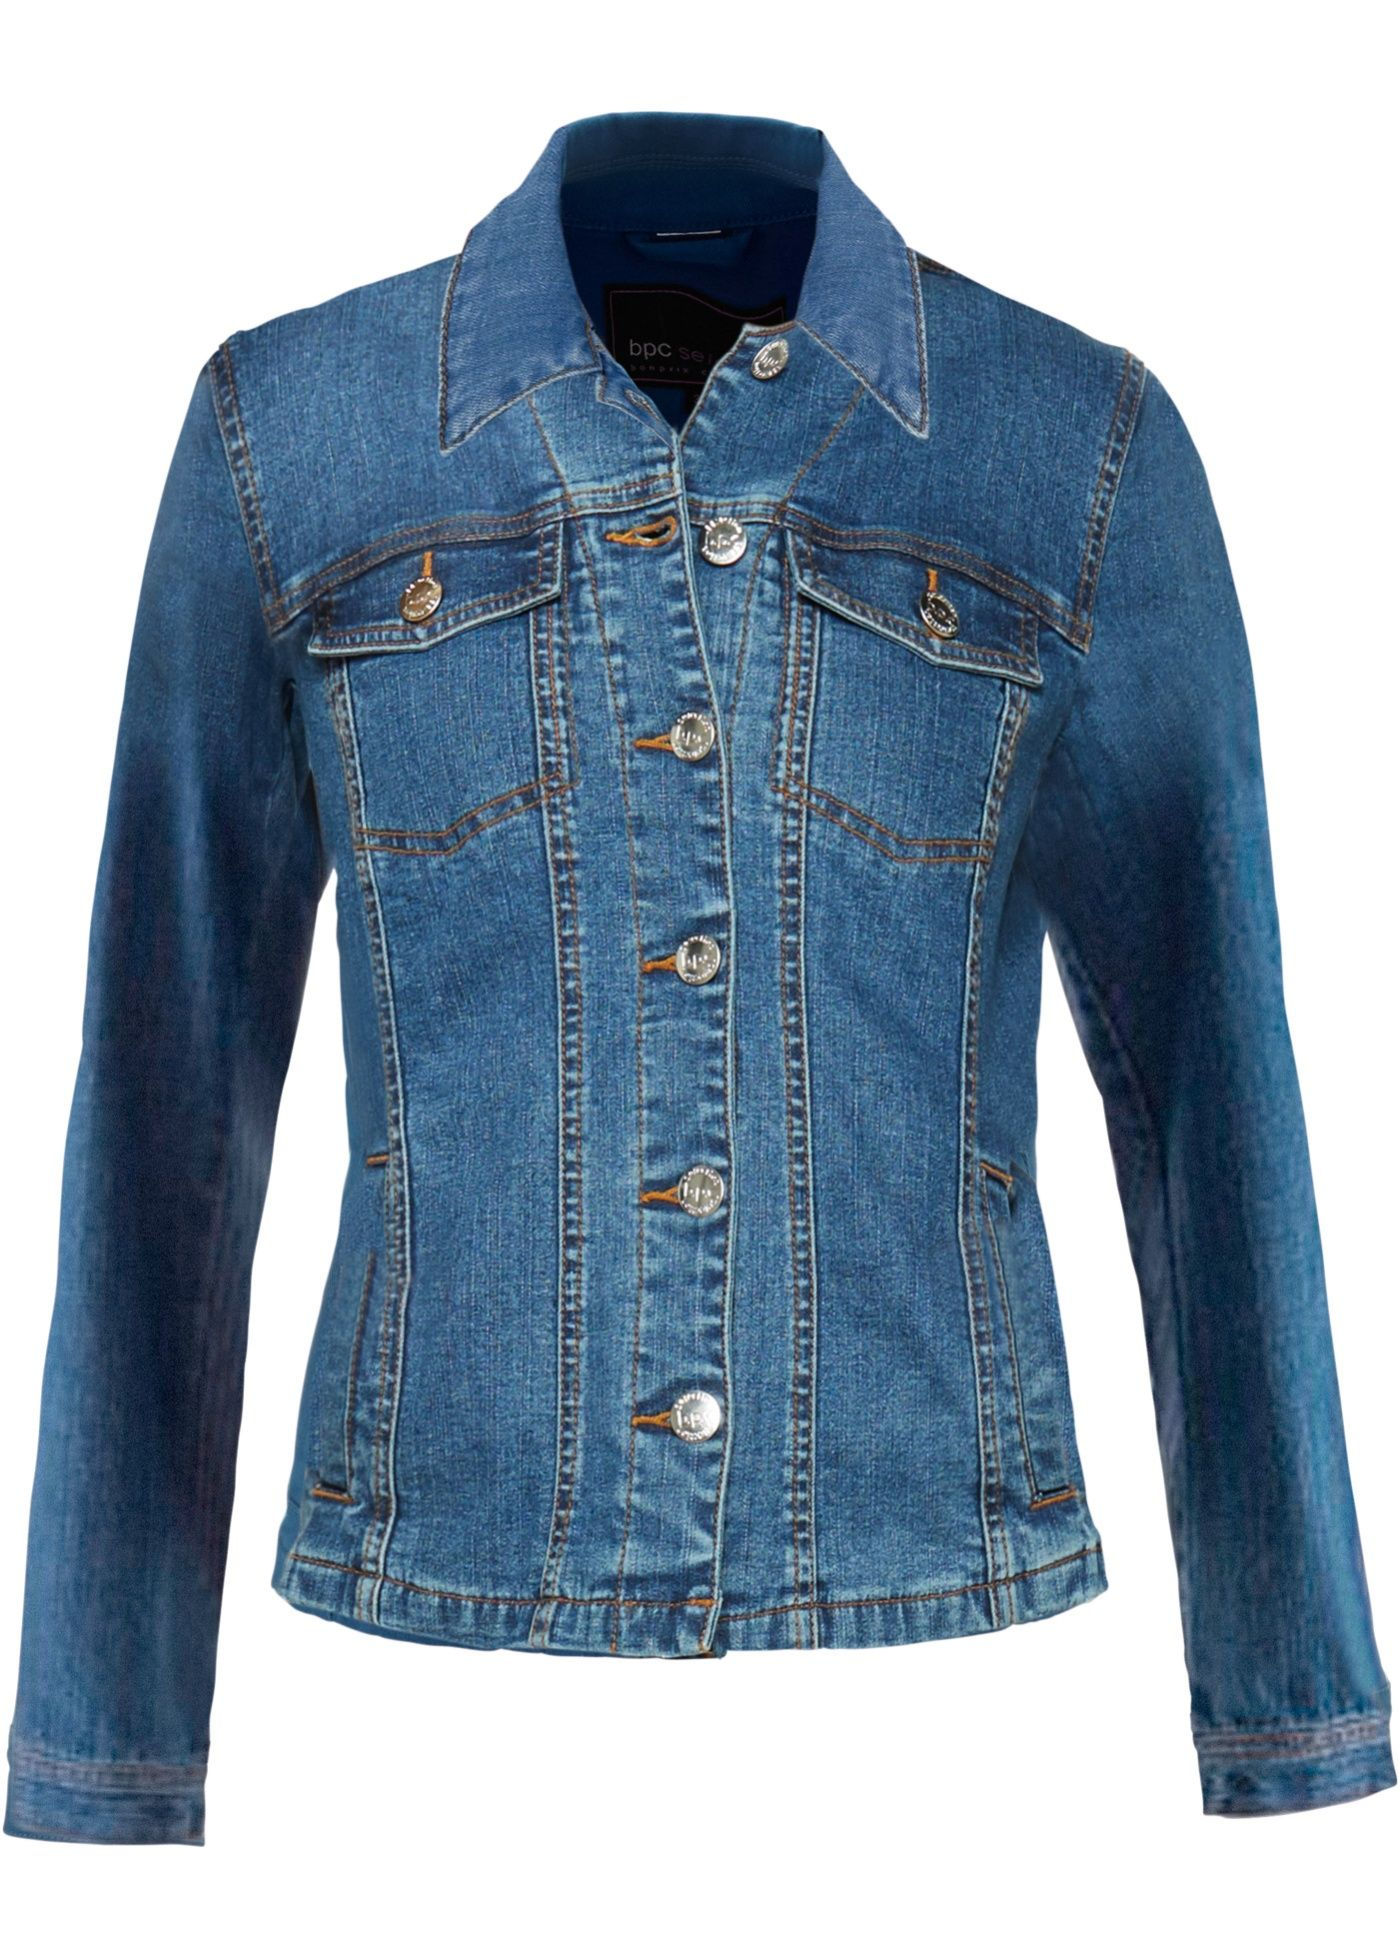 6a0f5039363a Jacke im modischen Jeanslook in 2019 | Products | Jacken, Jeans ...